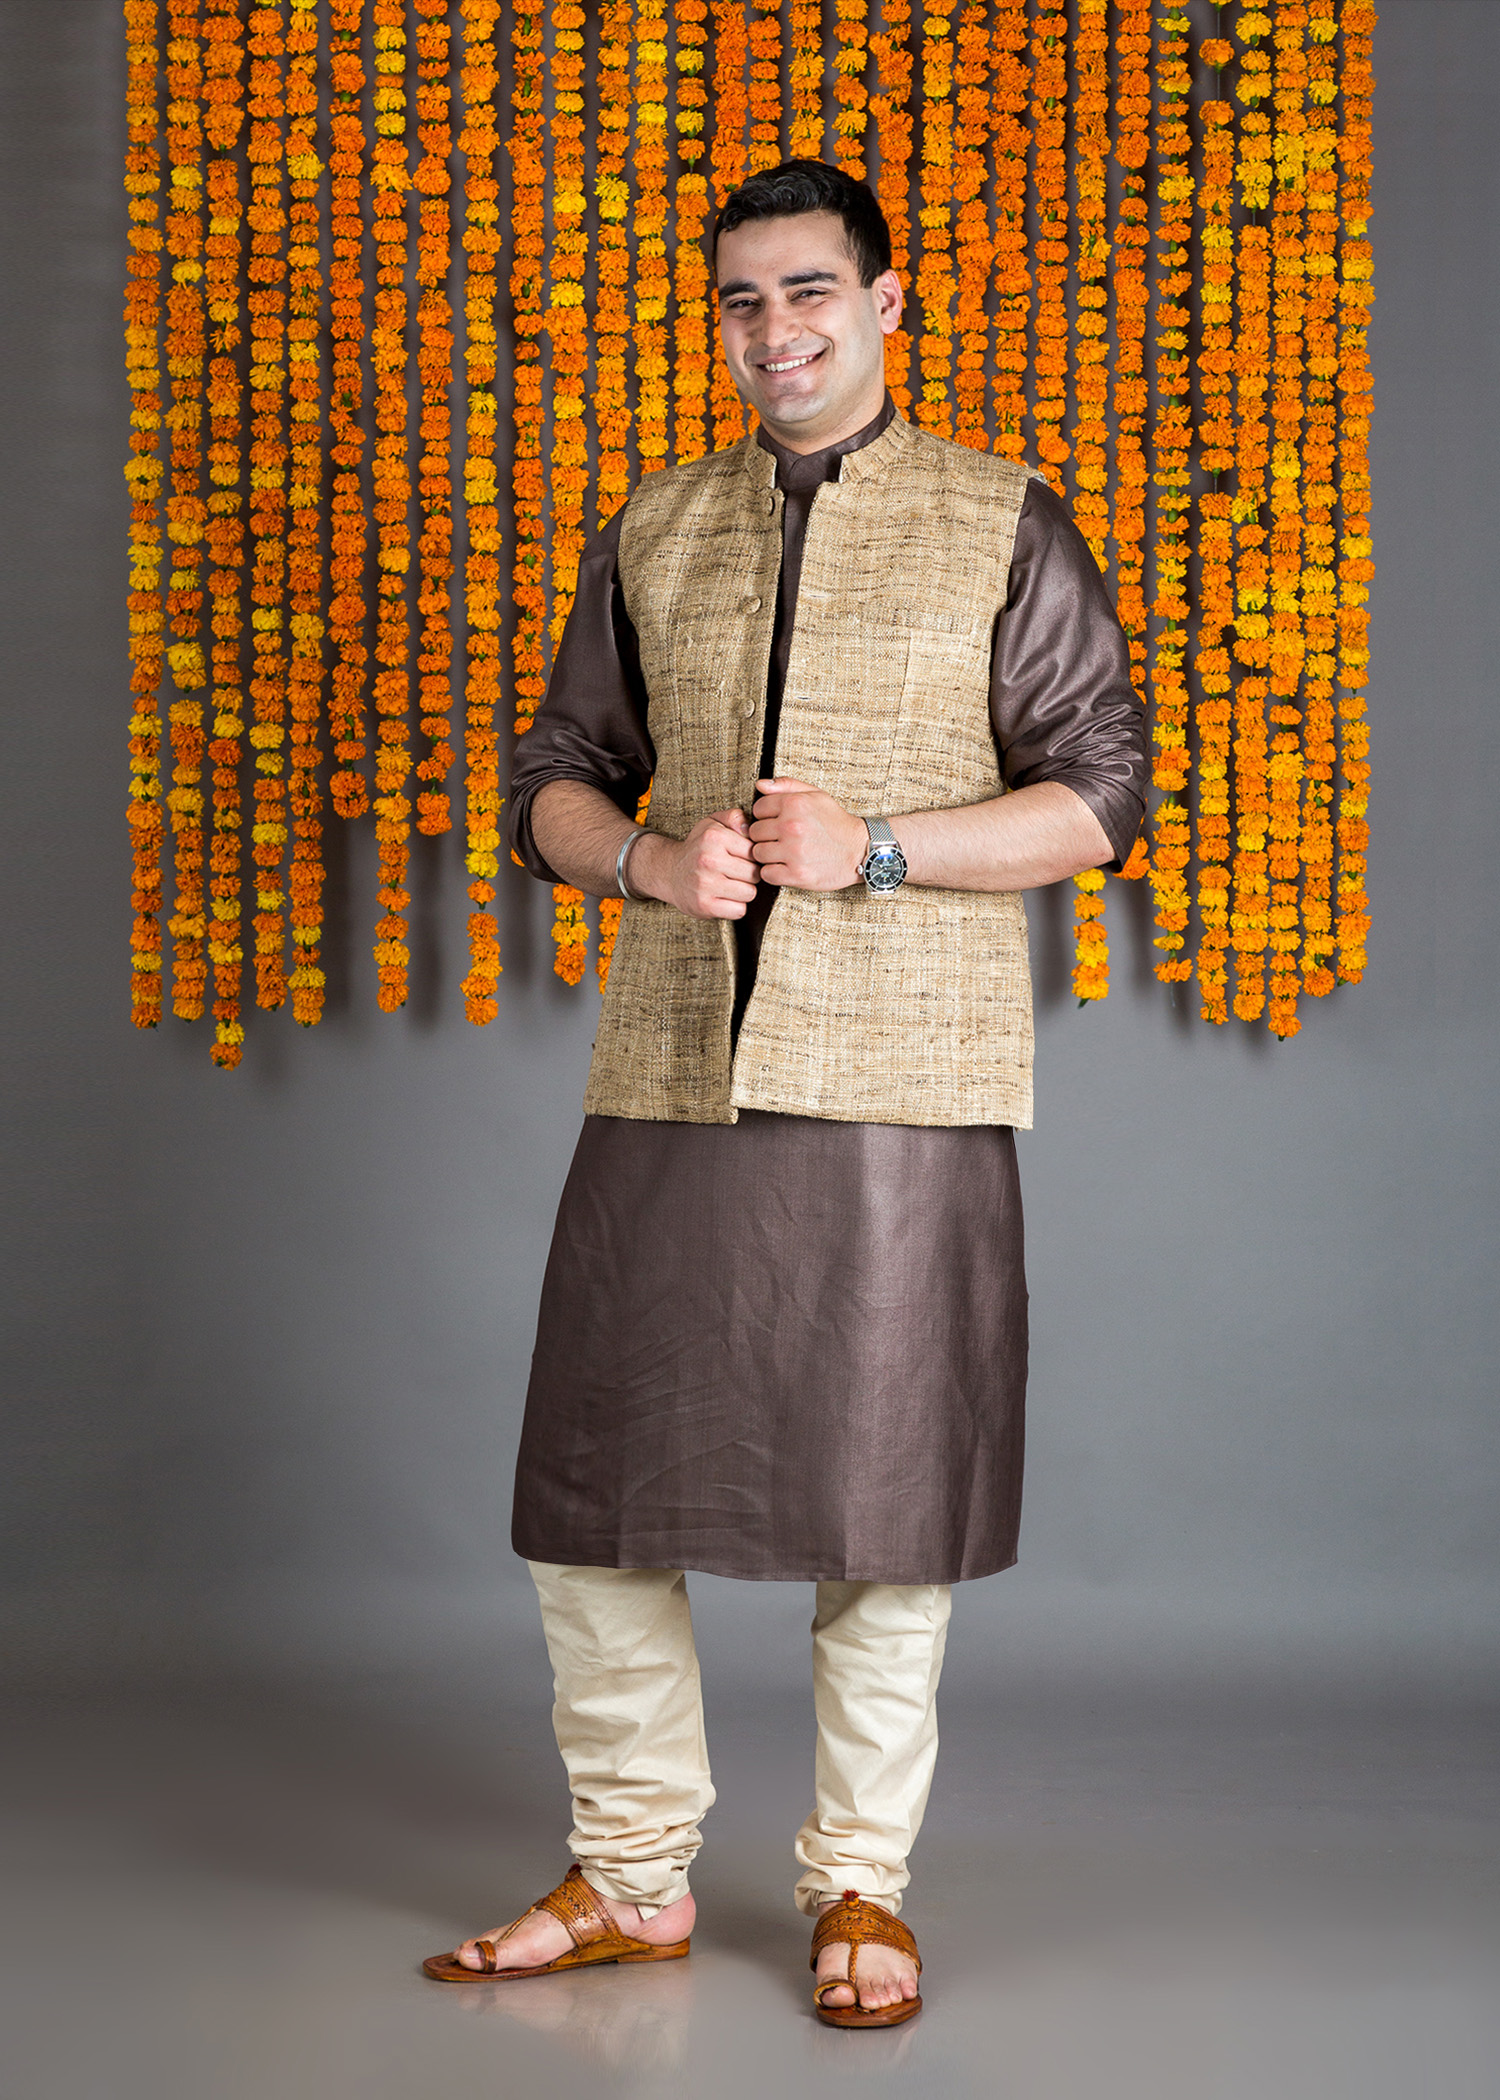 catalog/Festive 2018/brown kurta w jacket 1.jpg